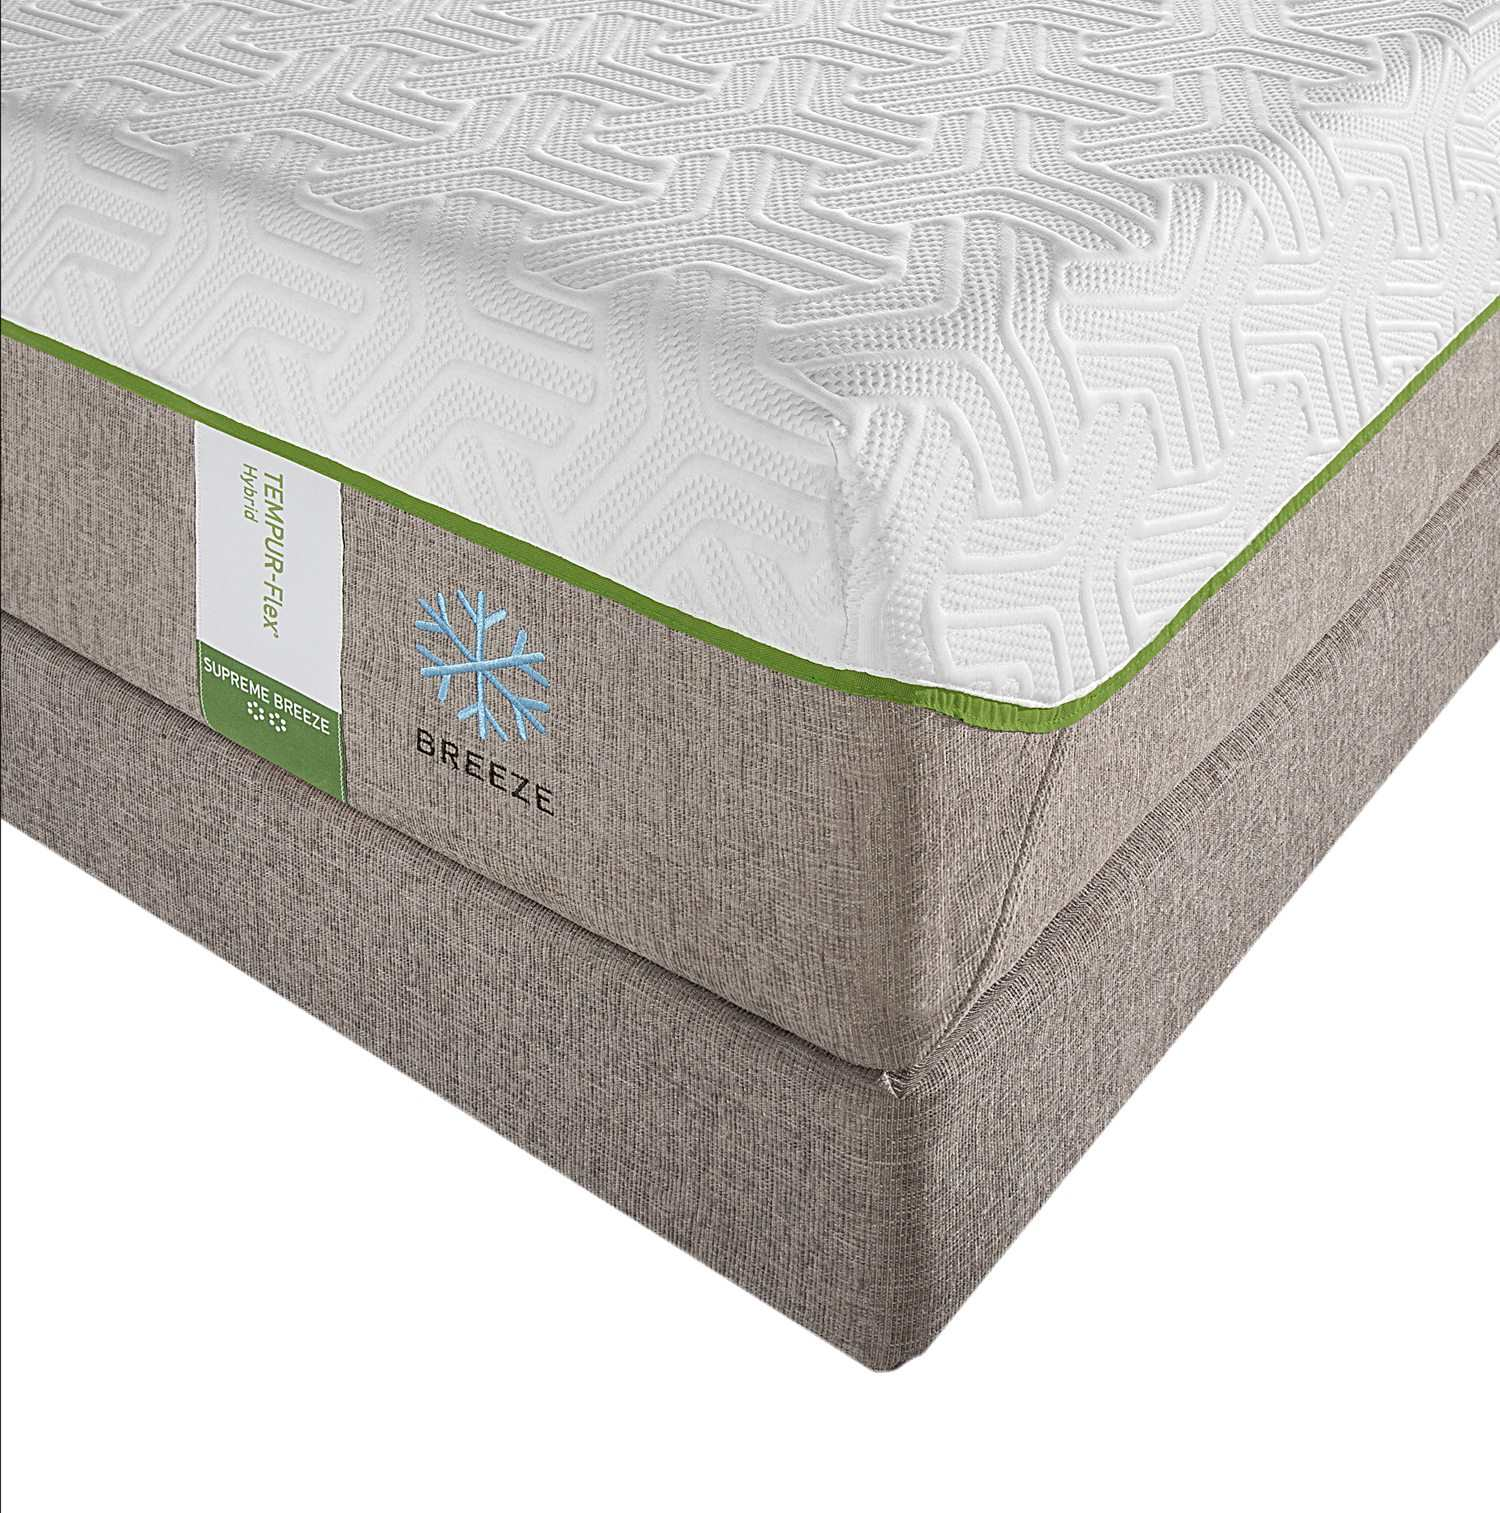 Flex Supreme Breeze – Tempur-Pedic